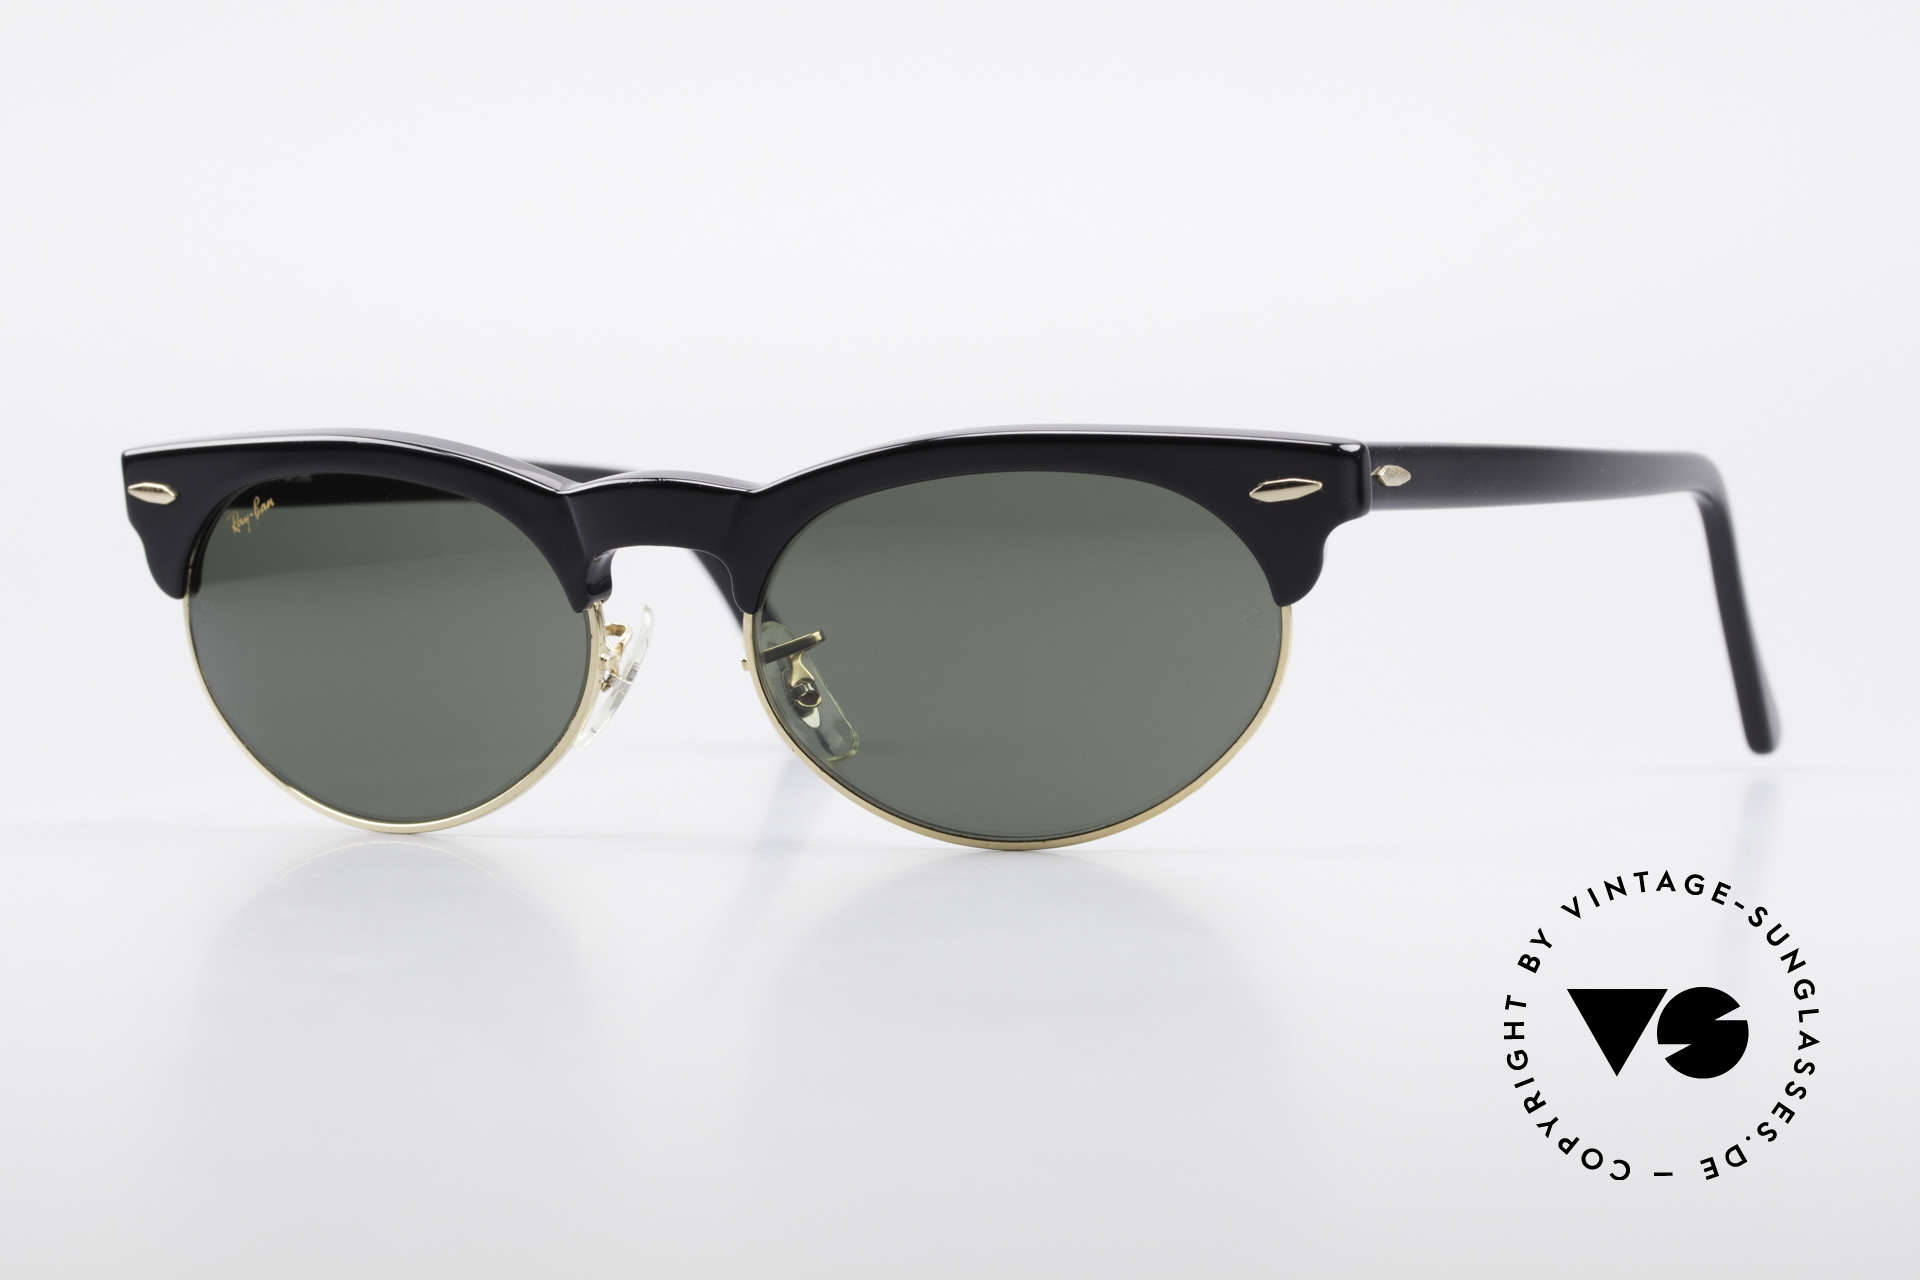 Ray Ban Oval Max 80's Bausch & Lomb Shades B&L, old original 1980's sunglasses by RAY-BAN, USA, Made for Men and Women